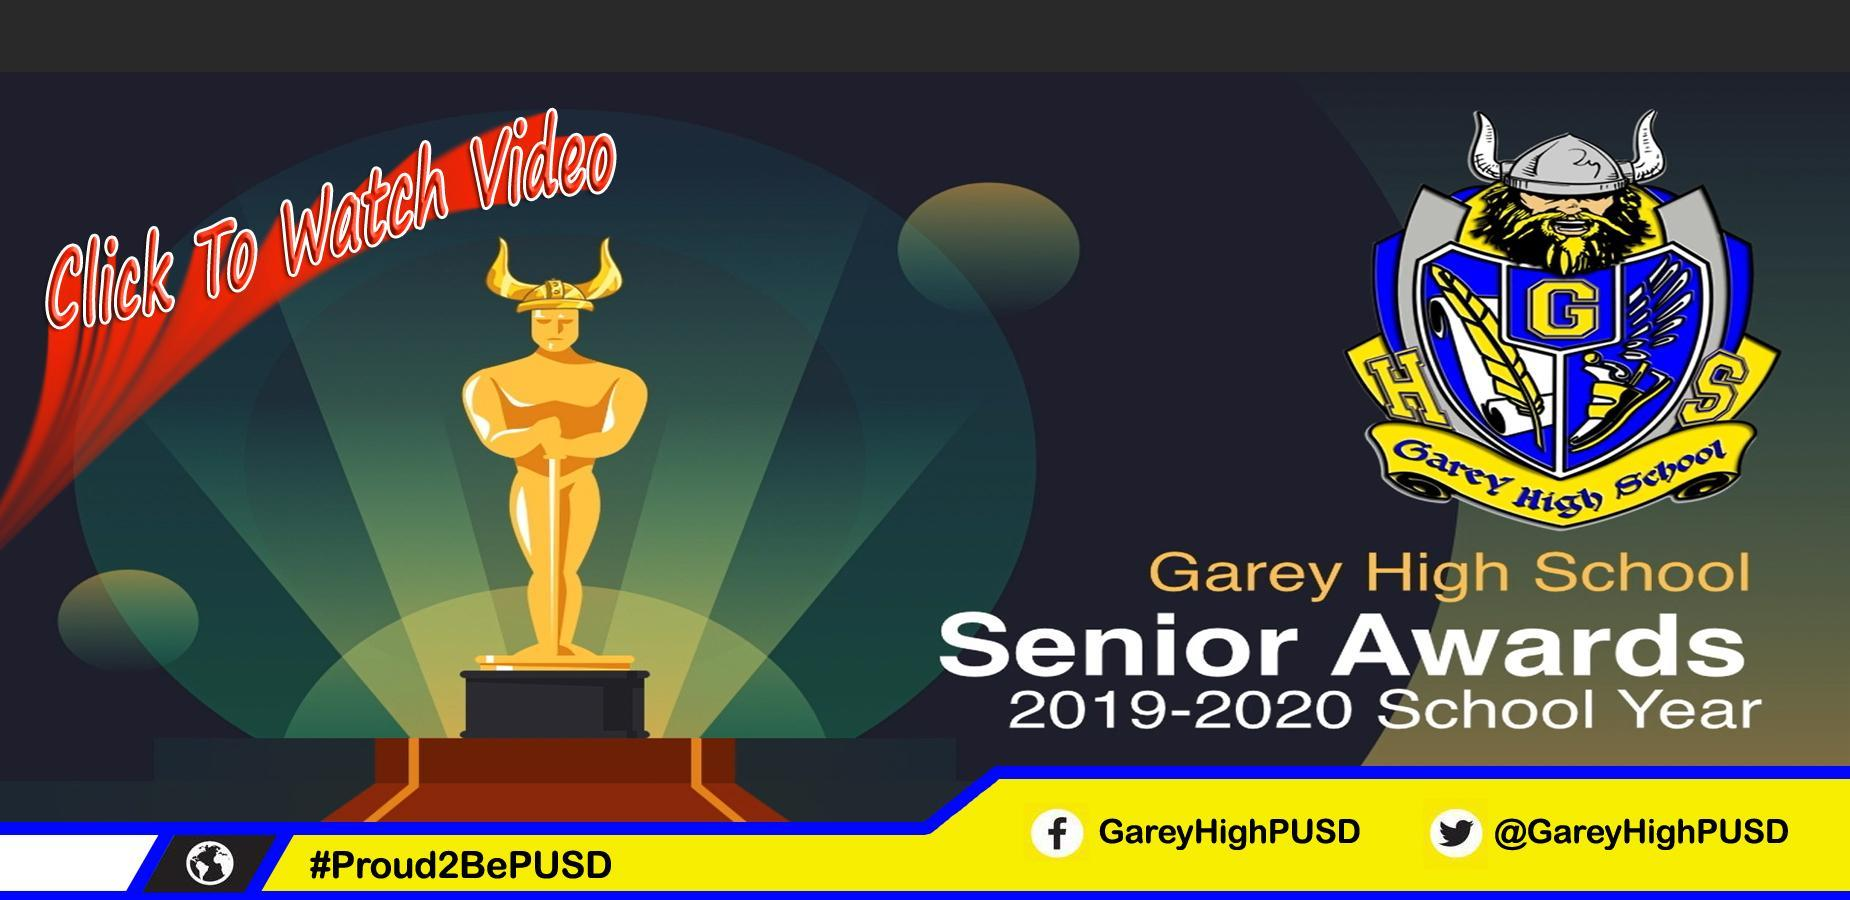 Graphic text, click to watch video Garey High school senior awards for the 2020 school year #proud2bepusd @gareyhighPUSD